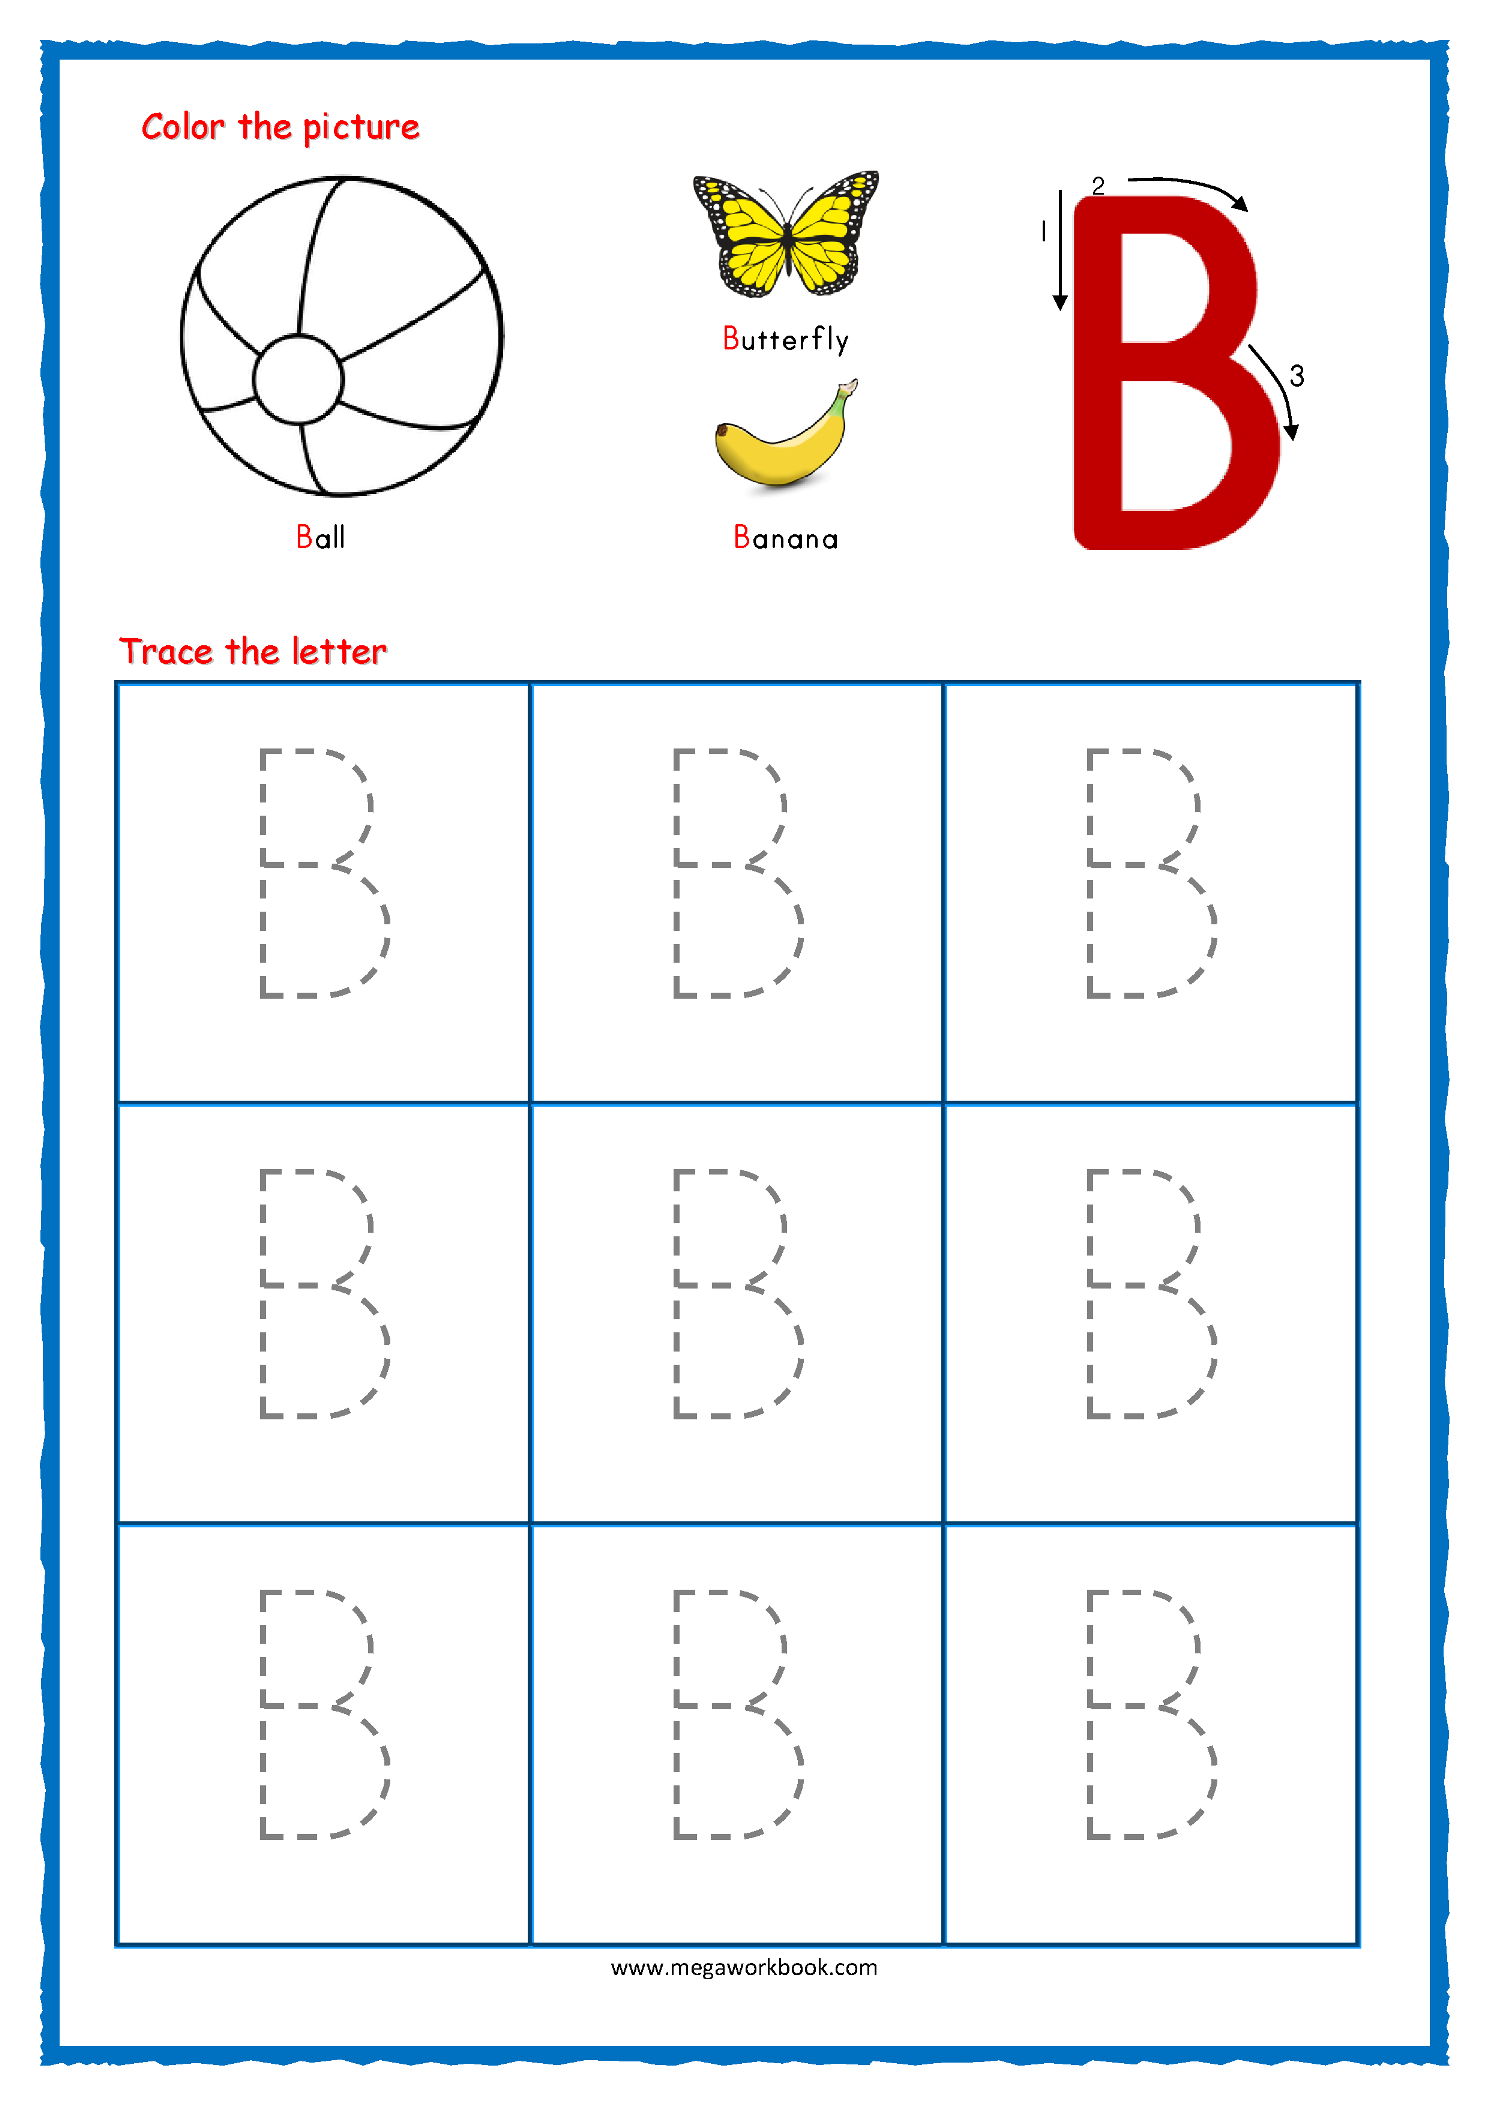 Tracing Letters - Alphabet Tracing - Capital Letters with Letter I Tracing Worksheets